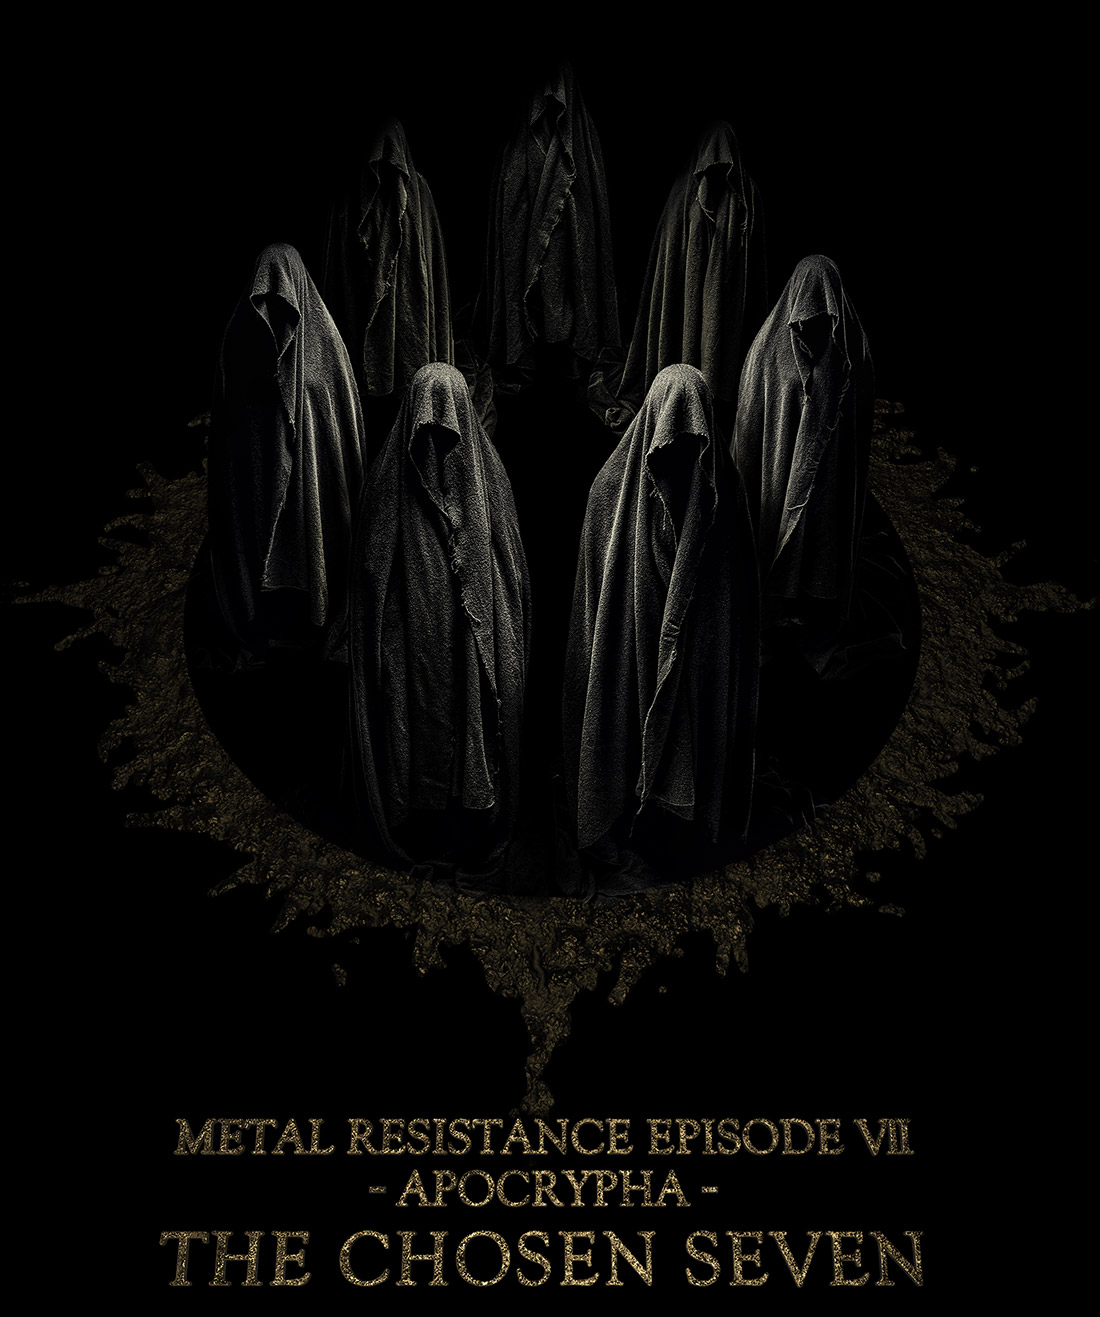 METAL RESISTANCE EPISODE VII - APOCRYPHA - THE CHOSEN SEVEN